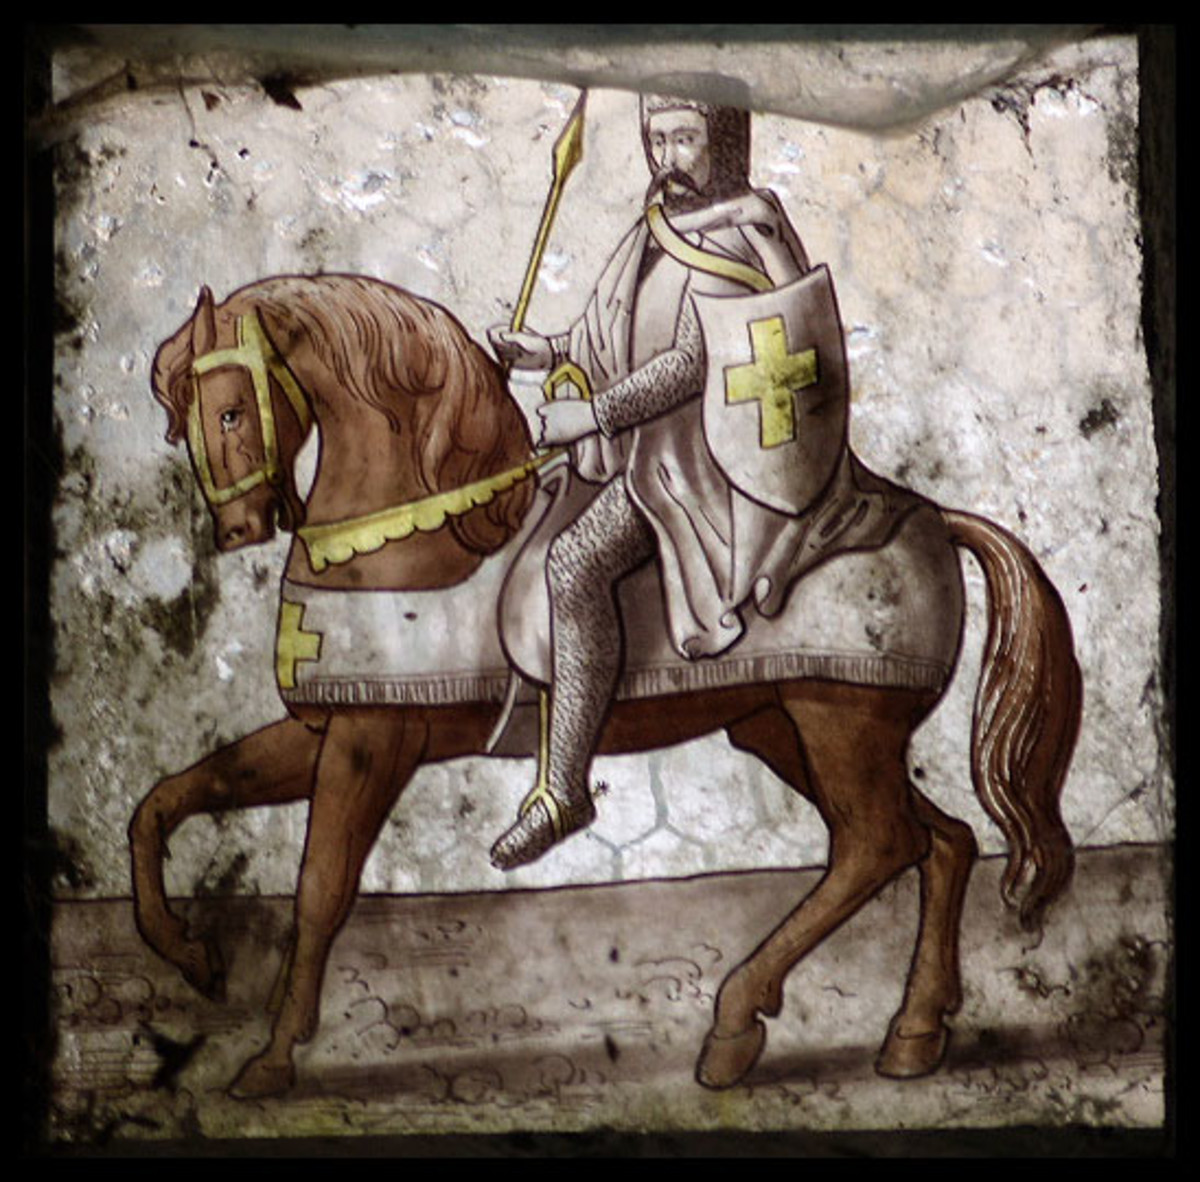 10 New Discoveries About the Crusaders